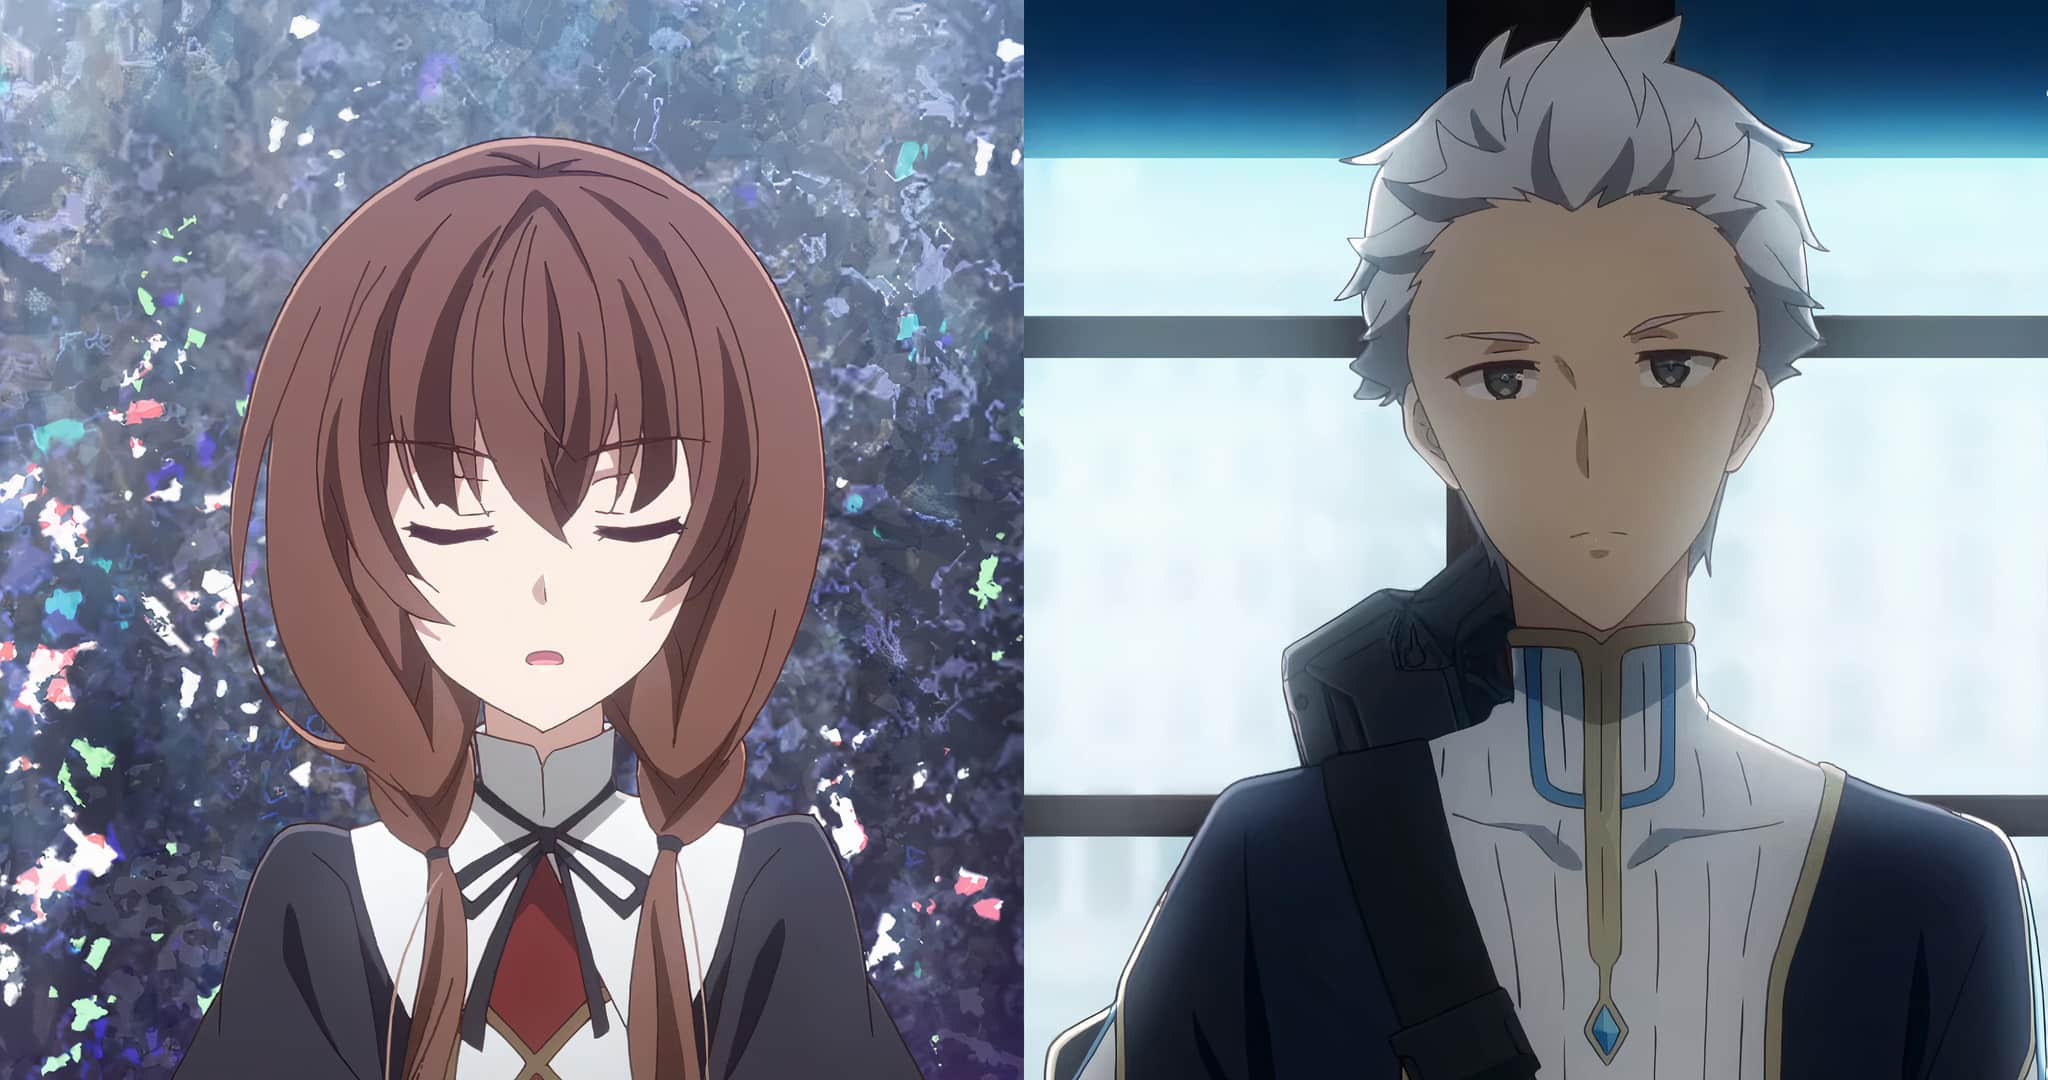 Annonce de l'anime Our Last Crusade or the Rise of a New World en Character Trailer